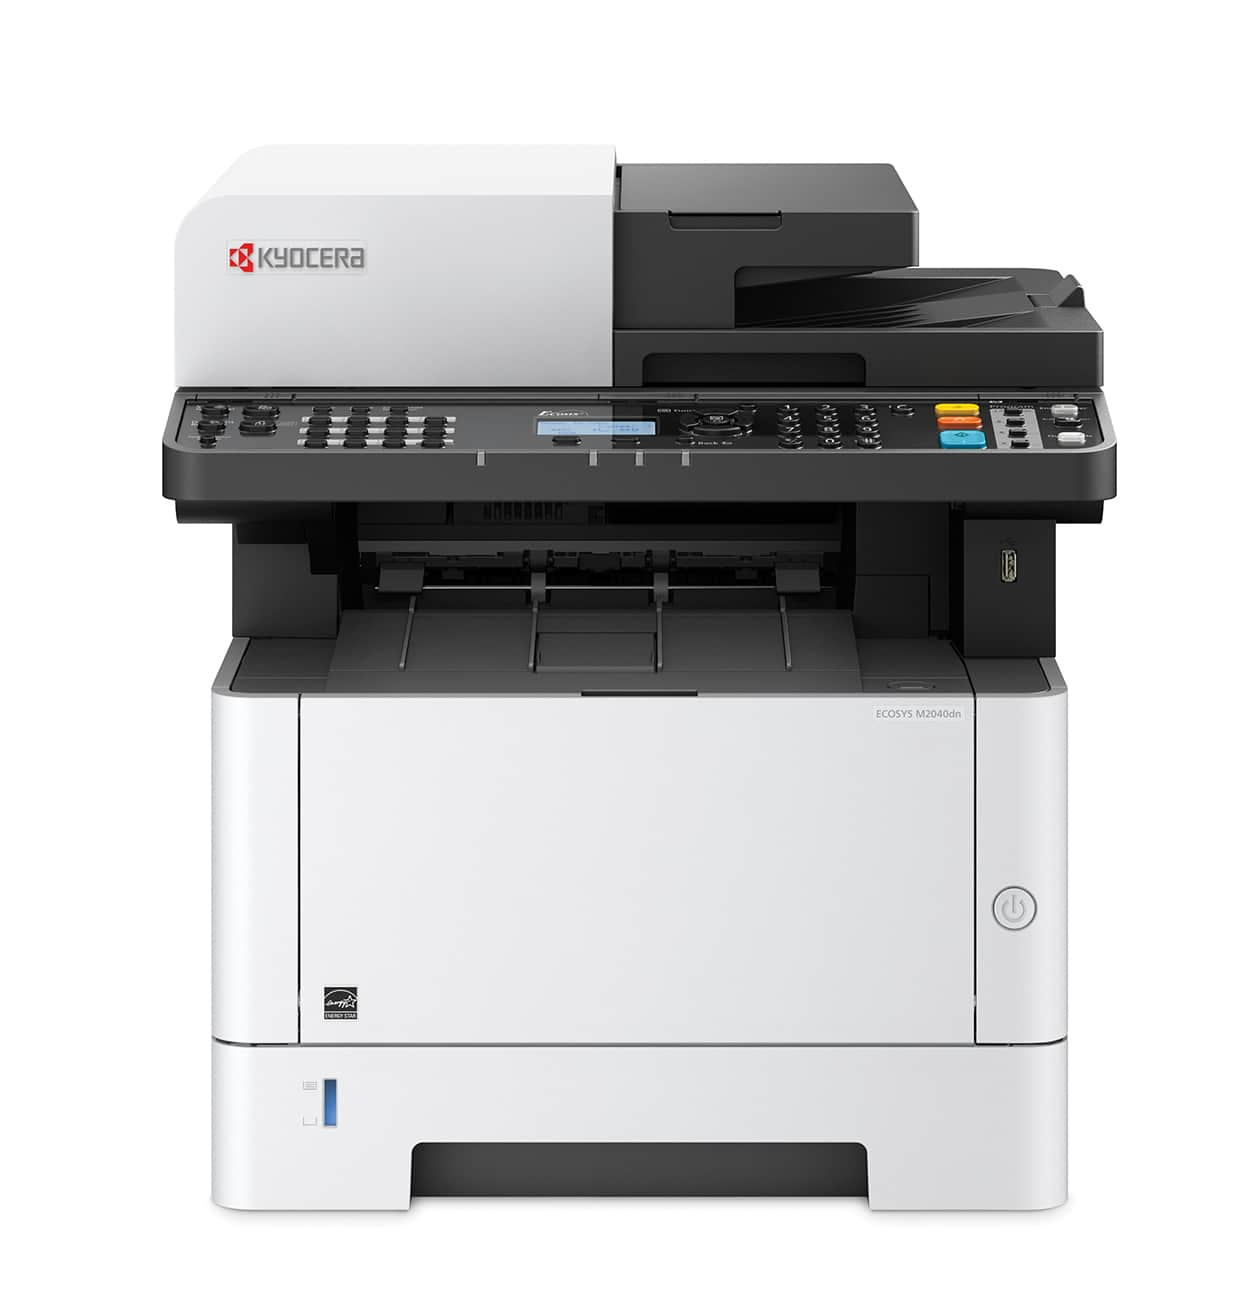 Kyocera ECOSYS M2040dn Review: A Core Component for Small Workgroups